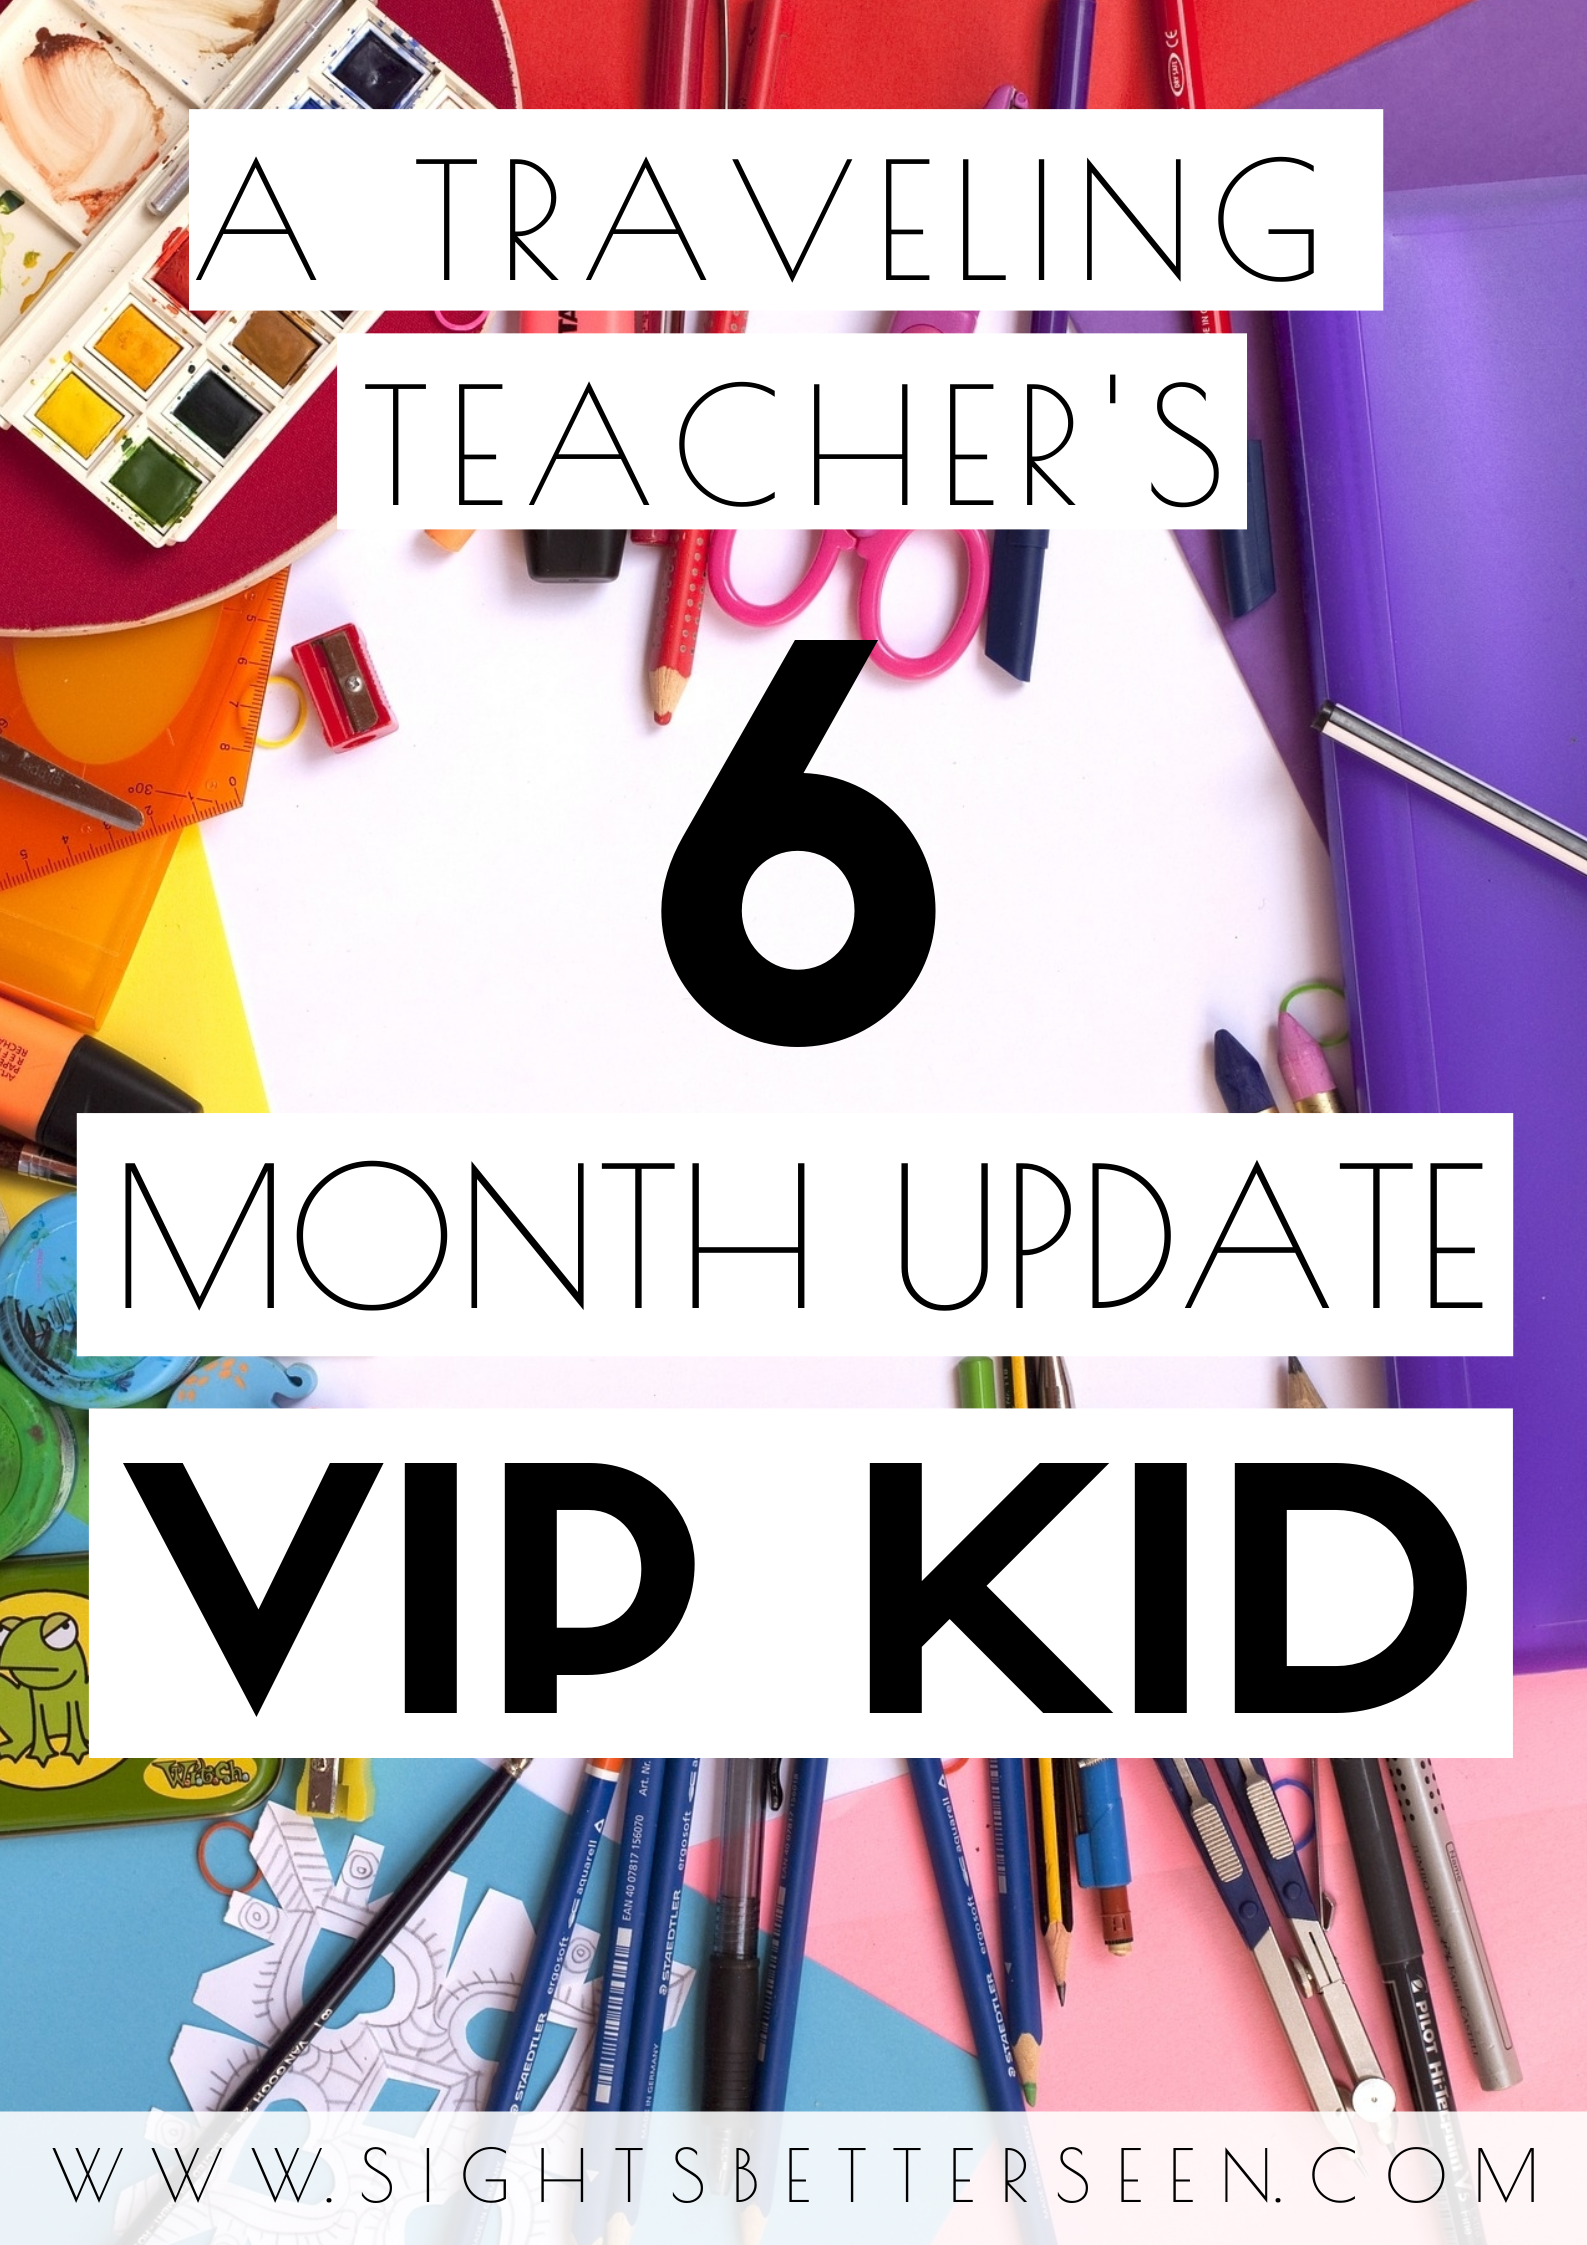 A traveling VIP Kid teacher's 6 month update, including tips, tricks, reward systems, and digital nomad life!